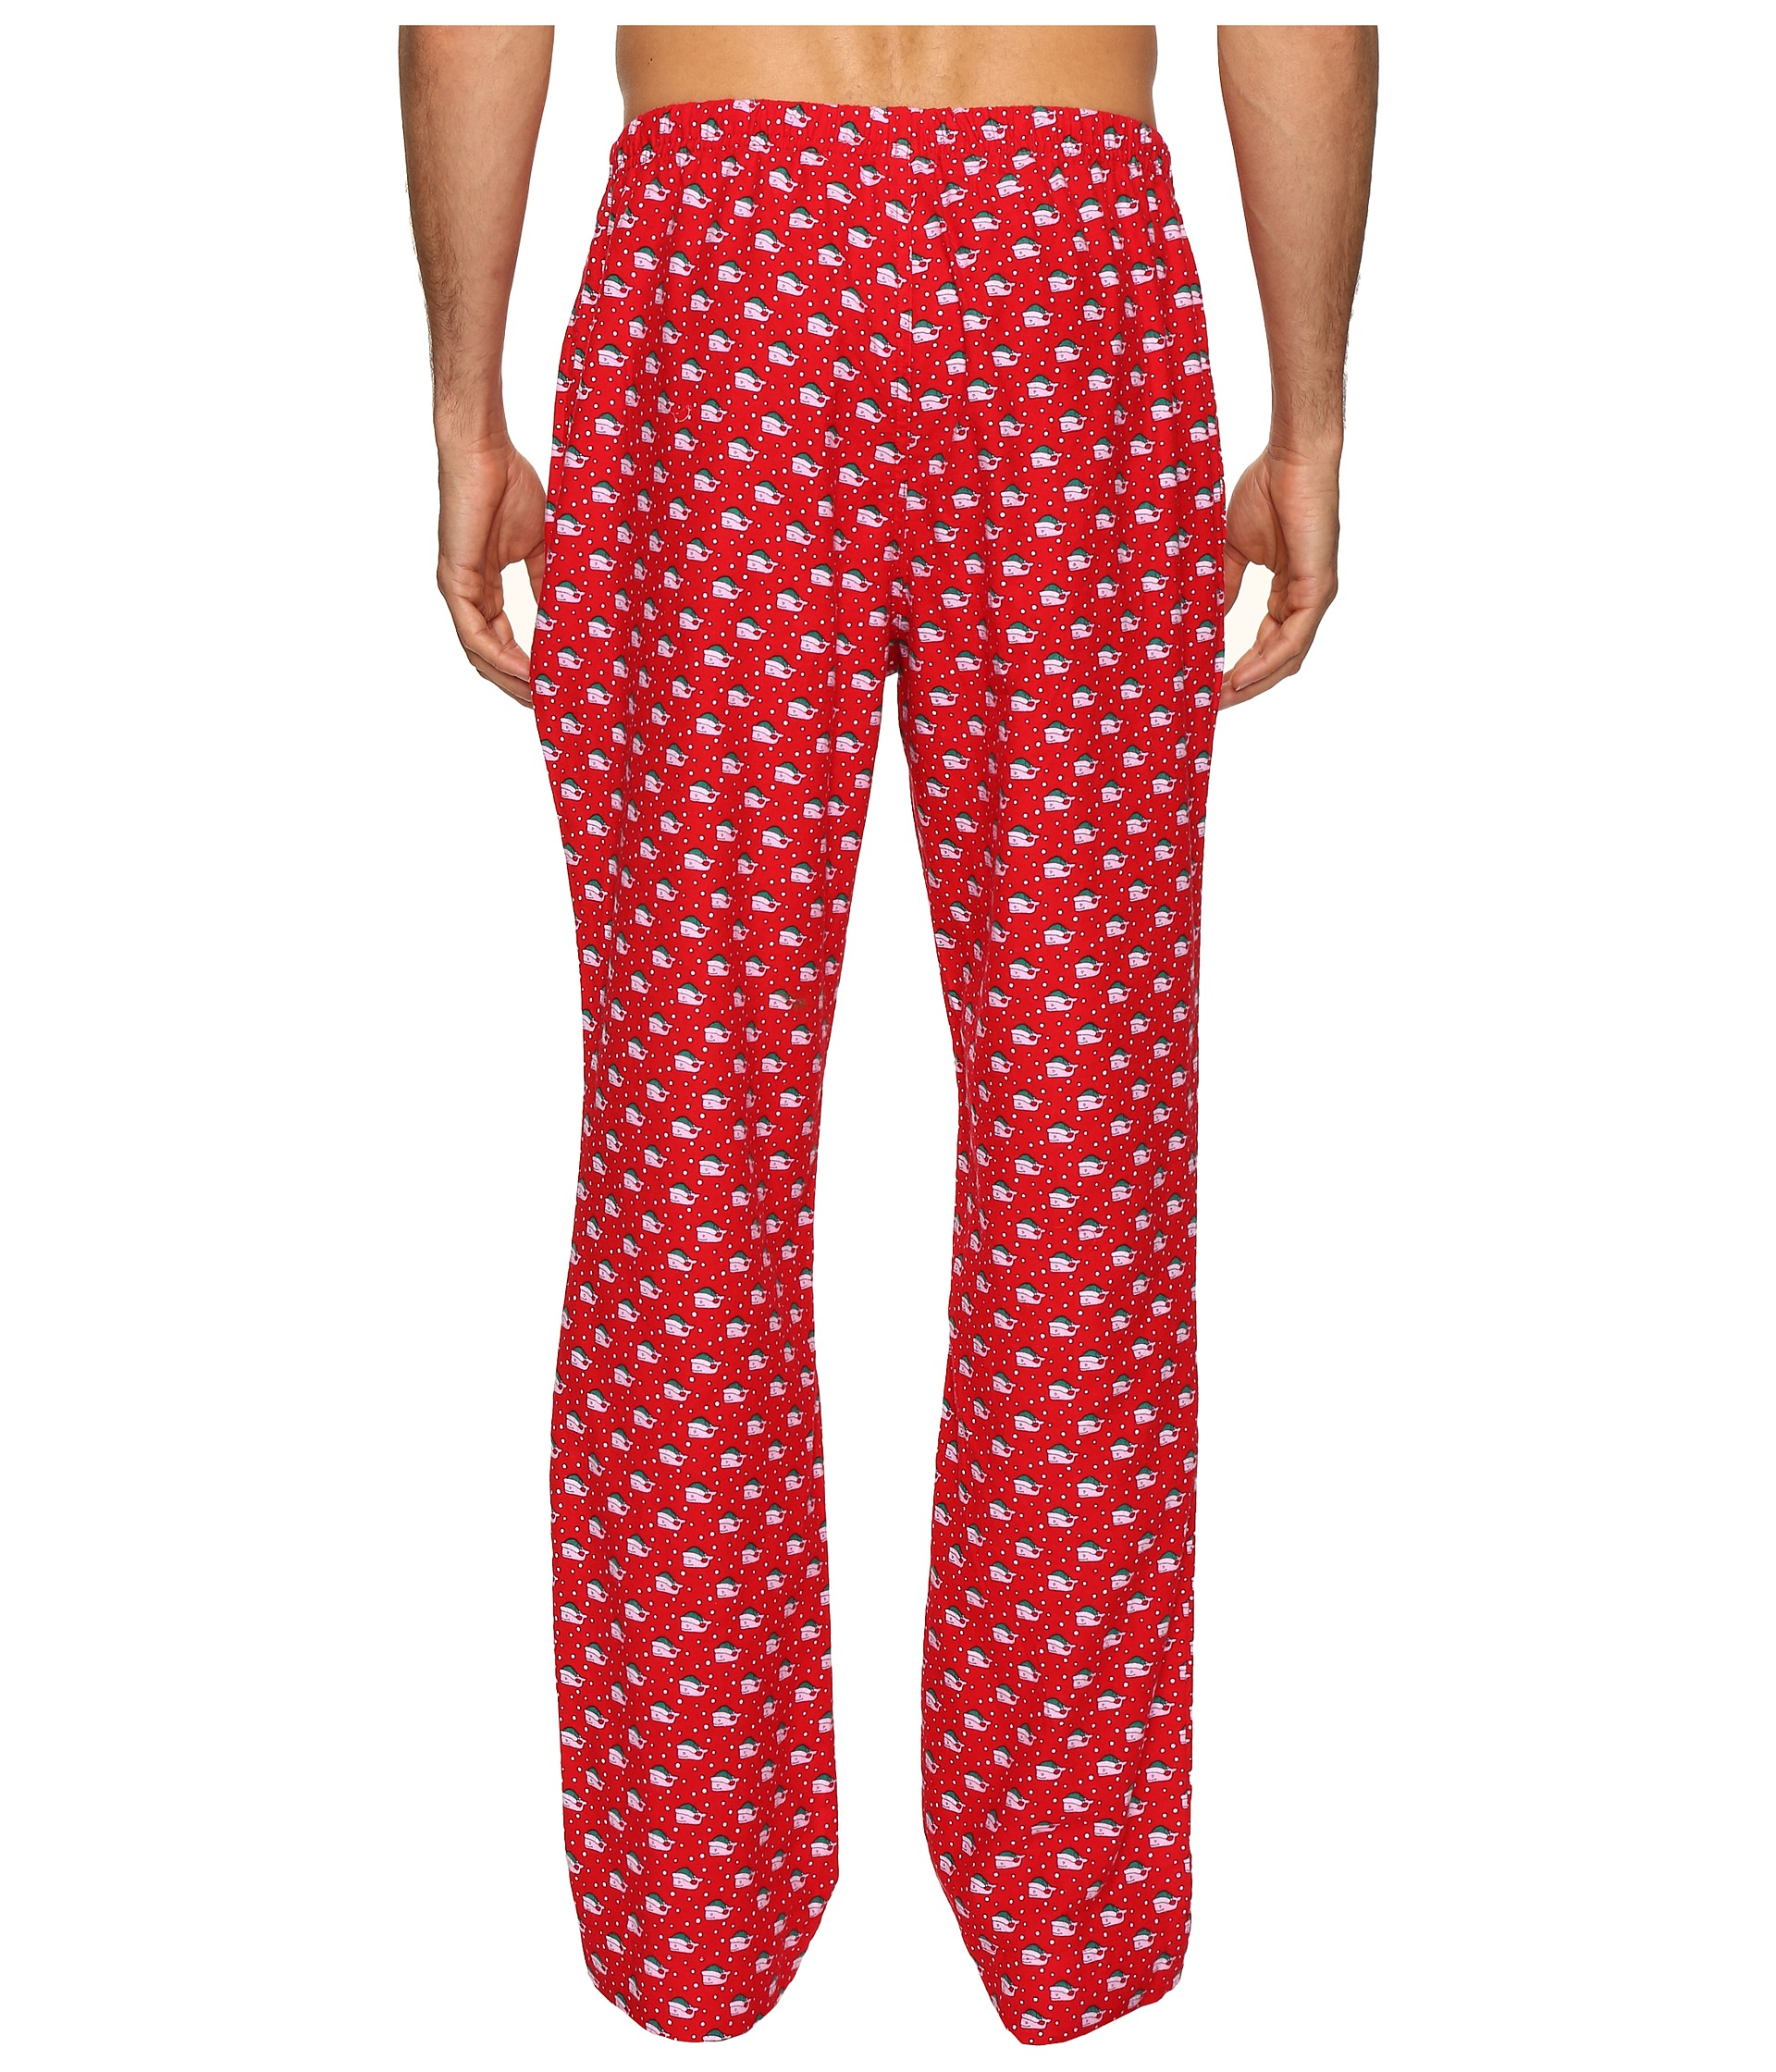 Vineyard Vines Santa Whale Lounge Pants Tomato Check